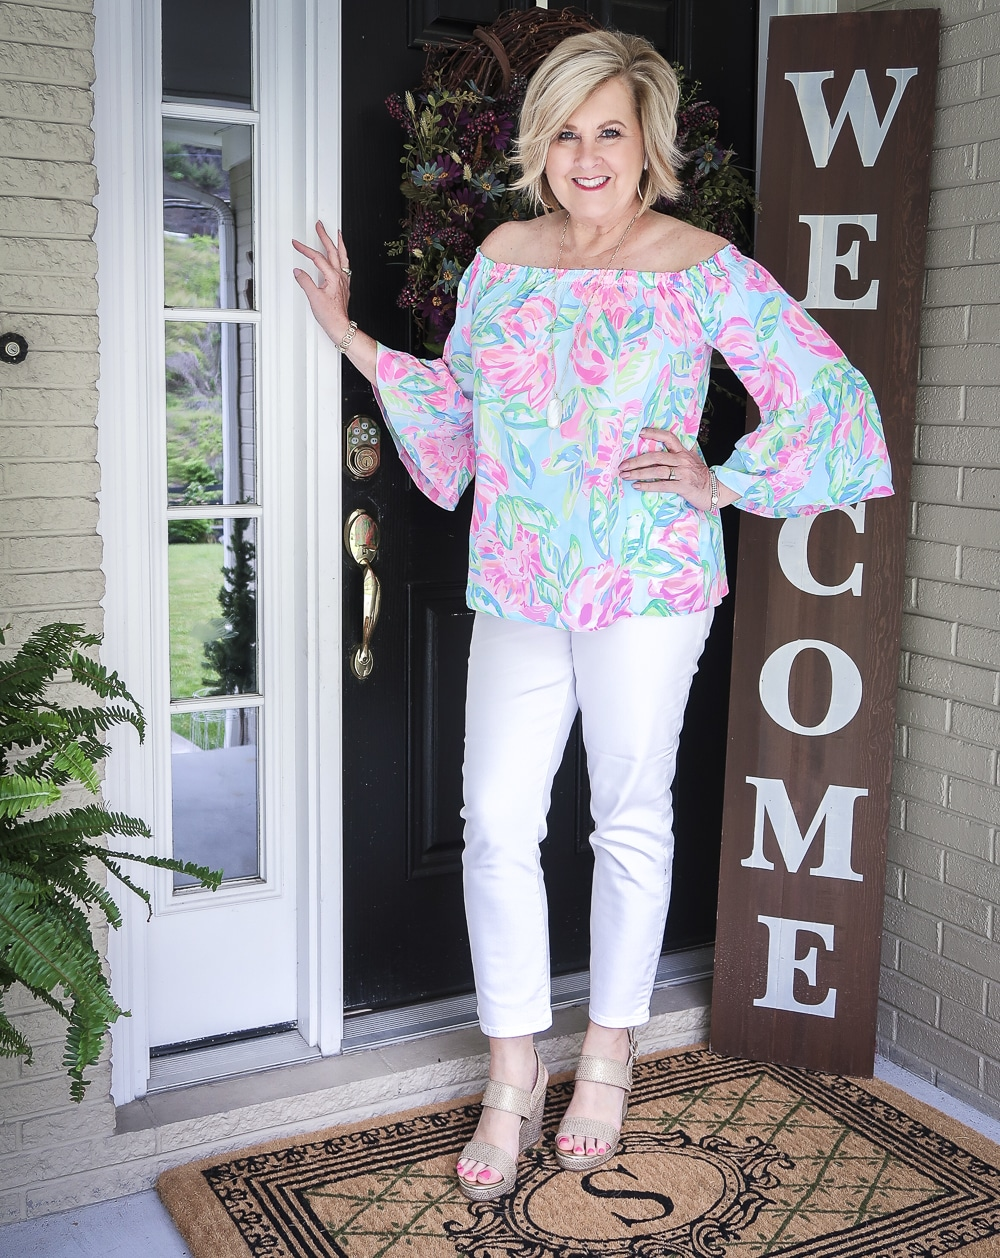 Fashion Blogger 50 Is Not Old wearing an off the shoulder top from Lilly Pulitzer and white crop jeans with gold espadrilles